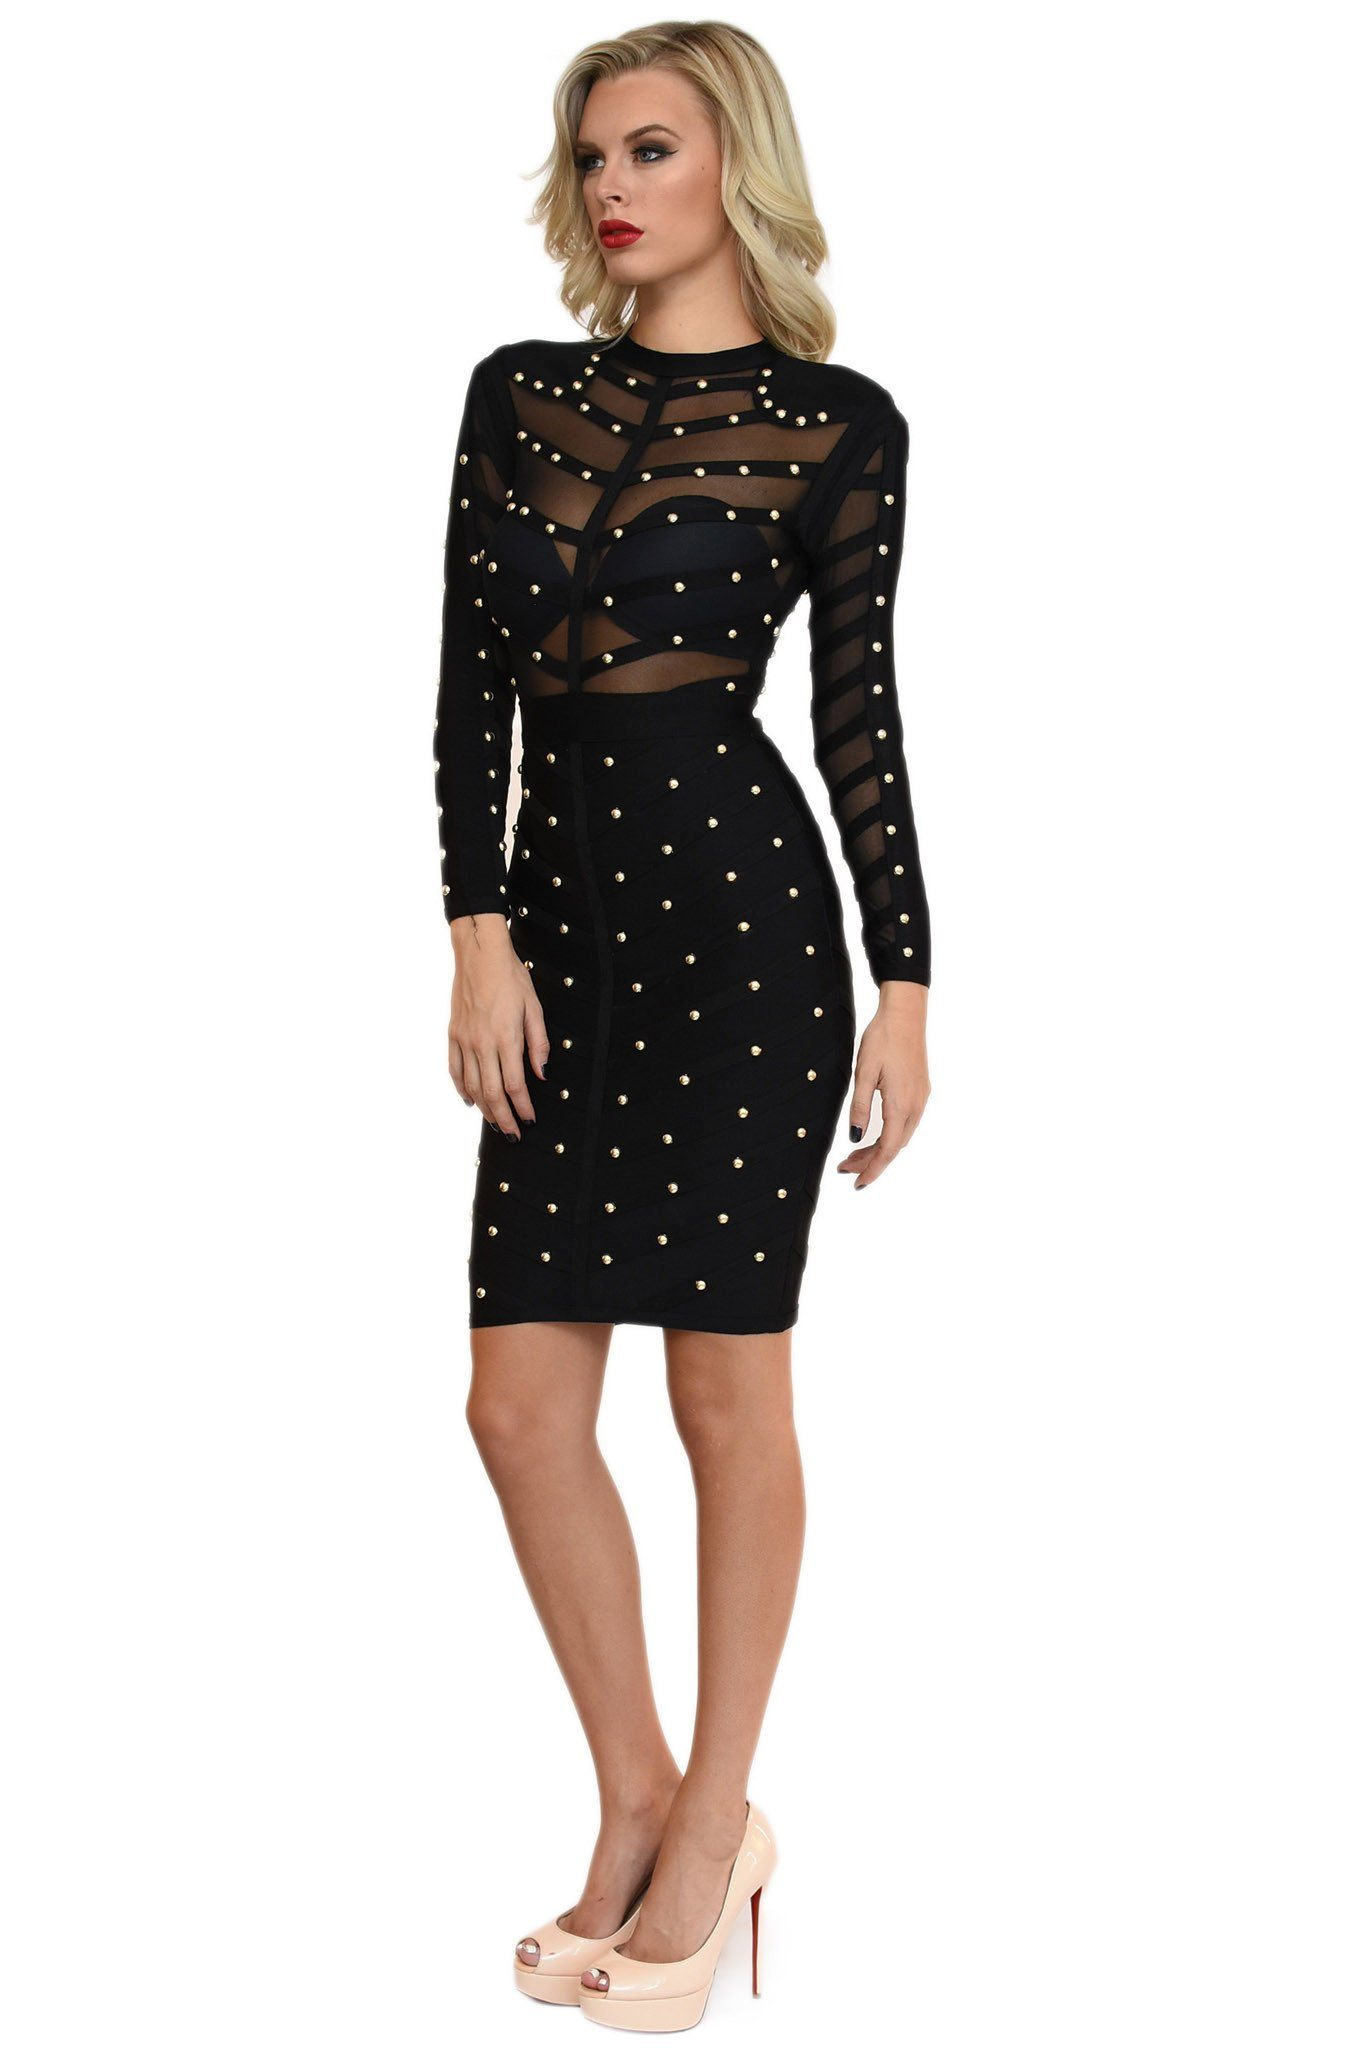 Side of black long sleeve midi bandage dress featuring gold beading details and sheer mesh